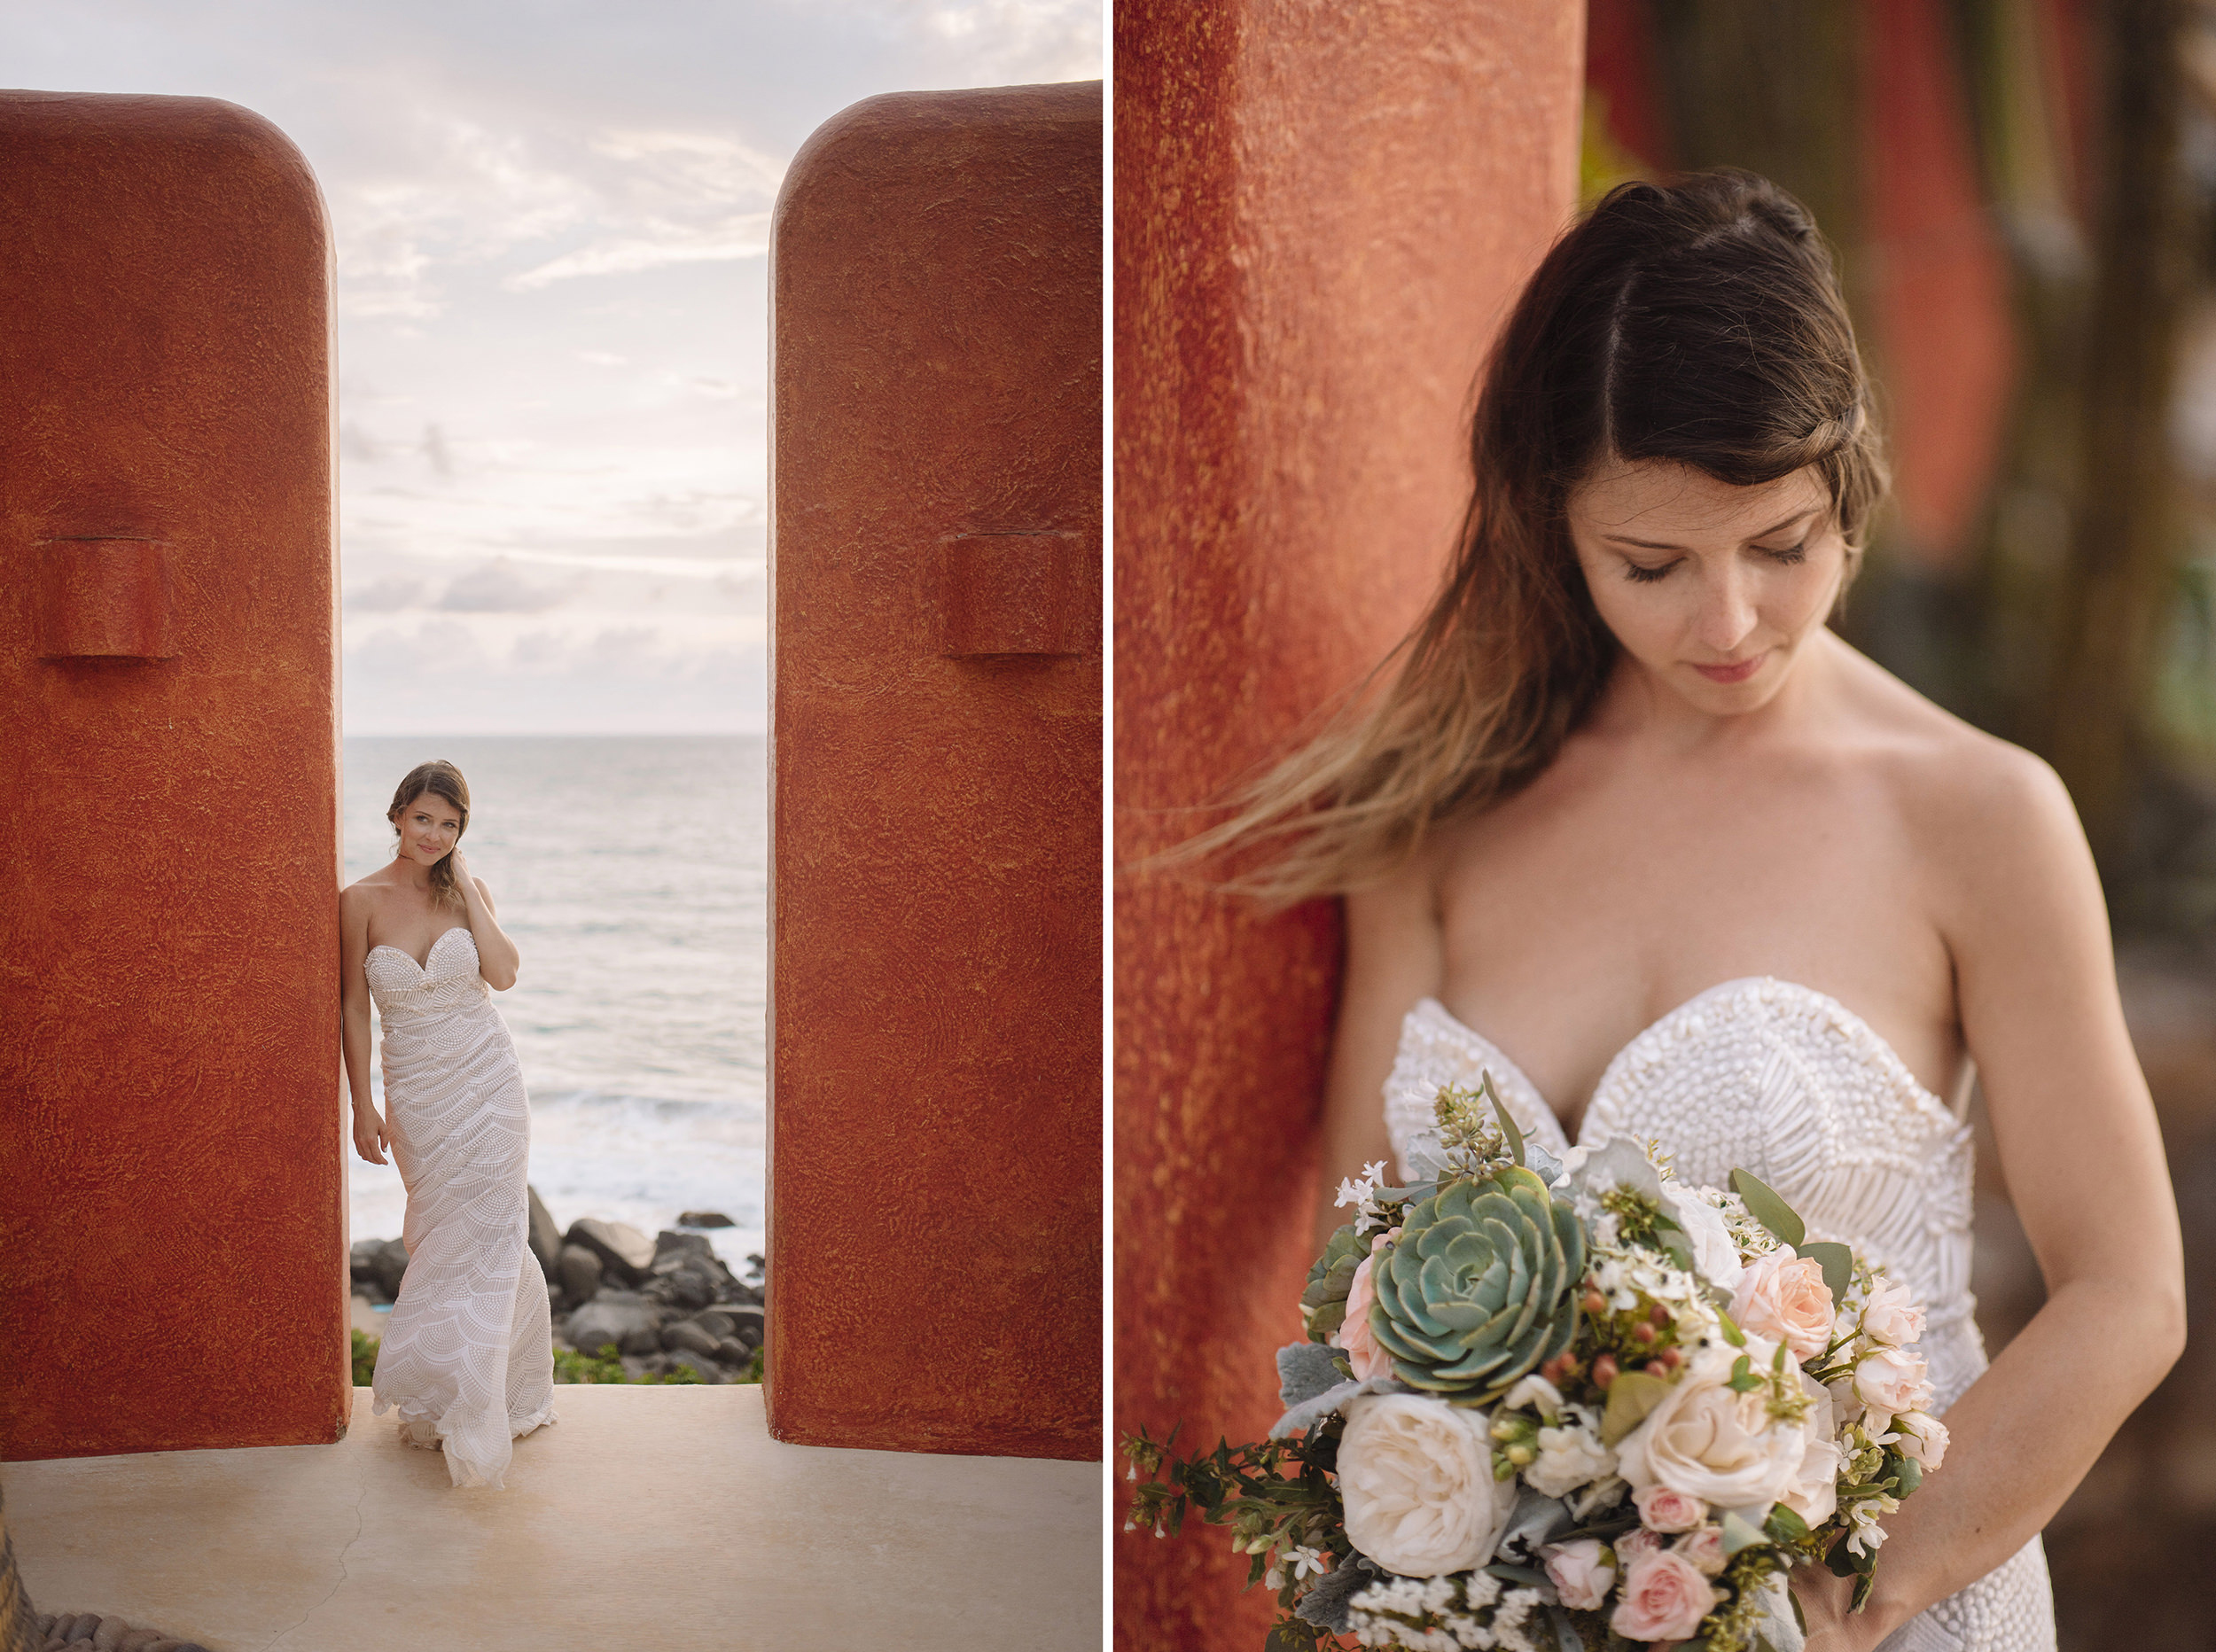 Colby-and-Jess-Intimate-Destination-Wedding-Sayulita-Puerto-Vallarta-Mexico174.jpg